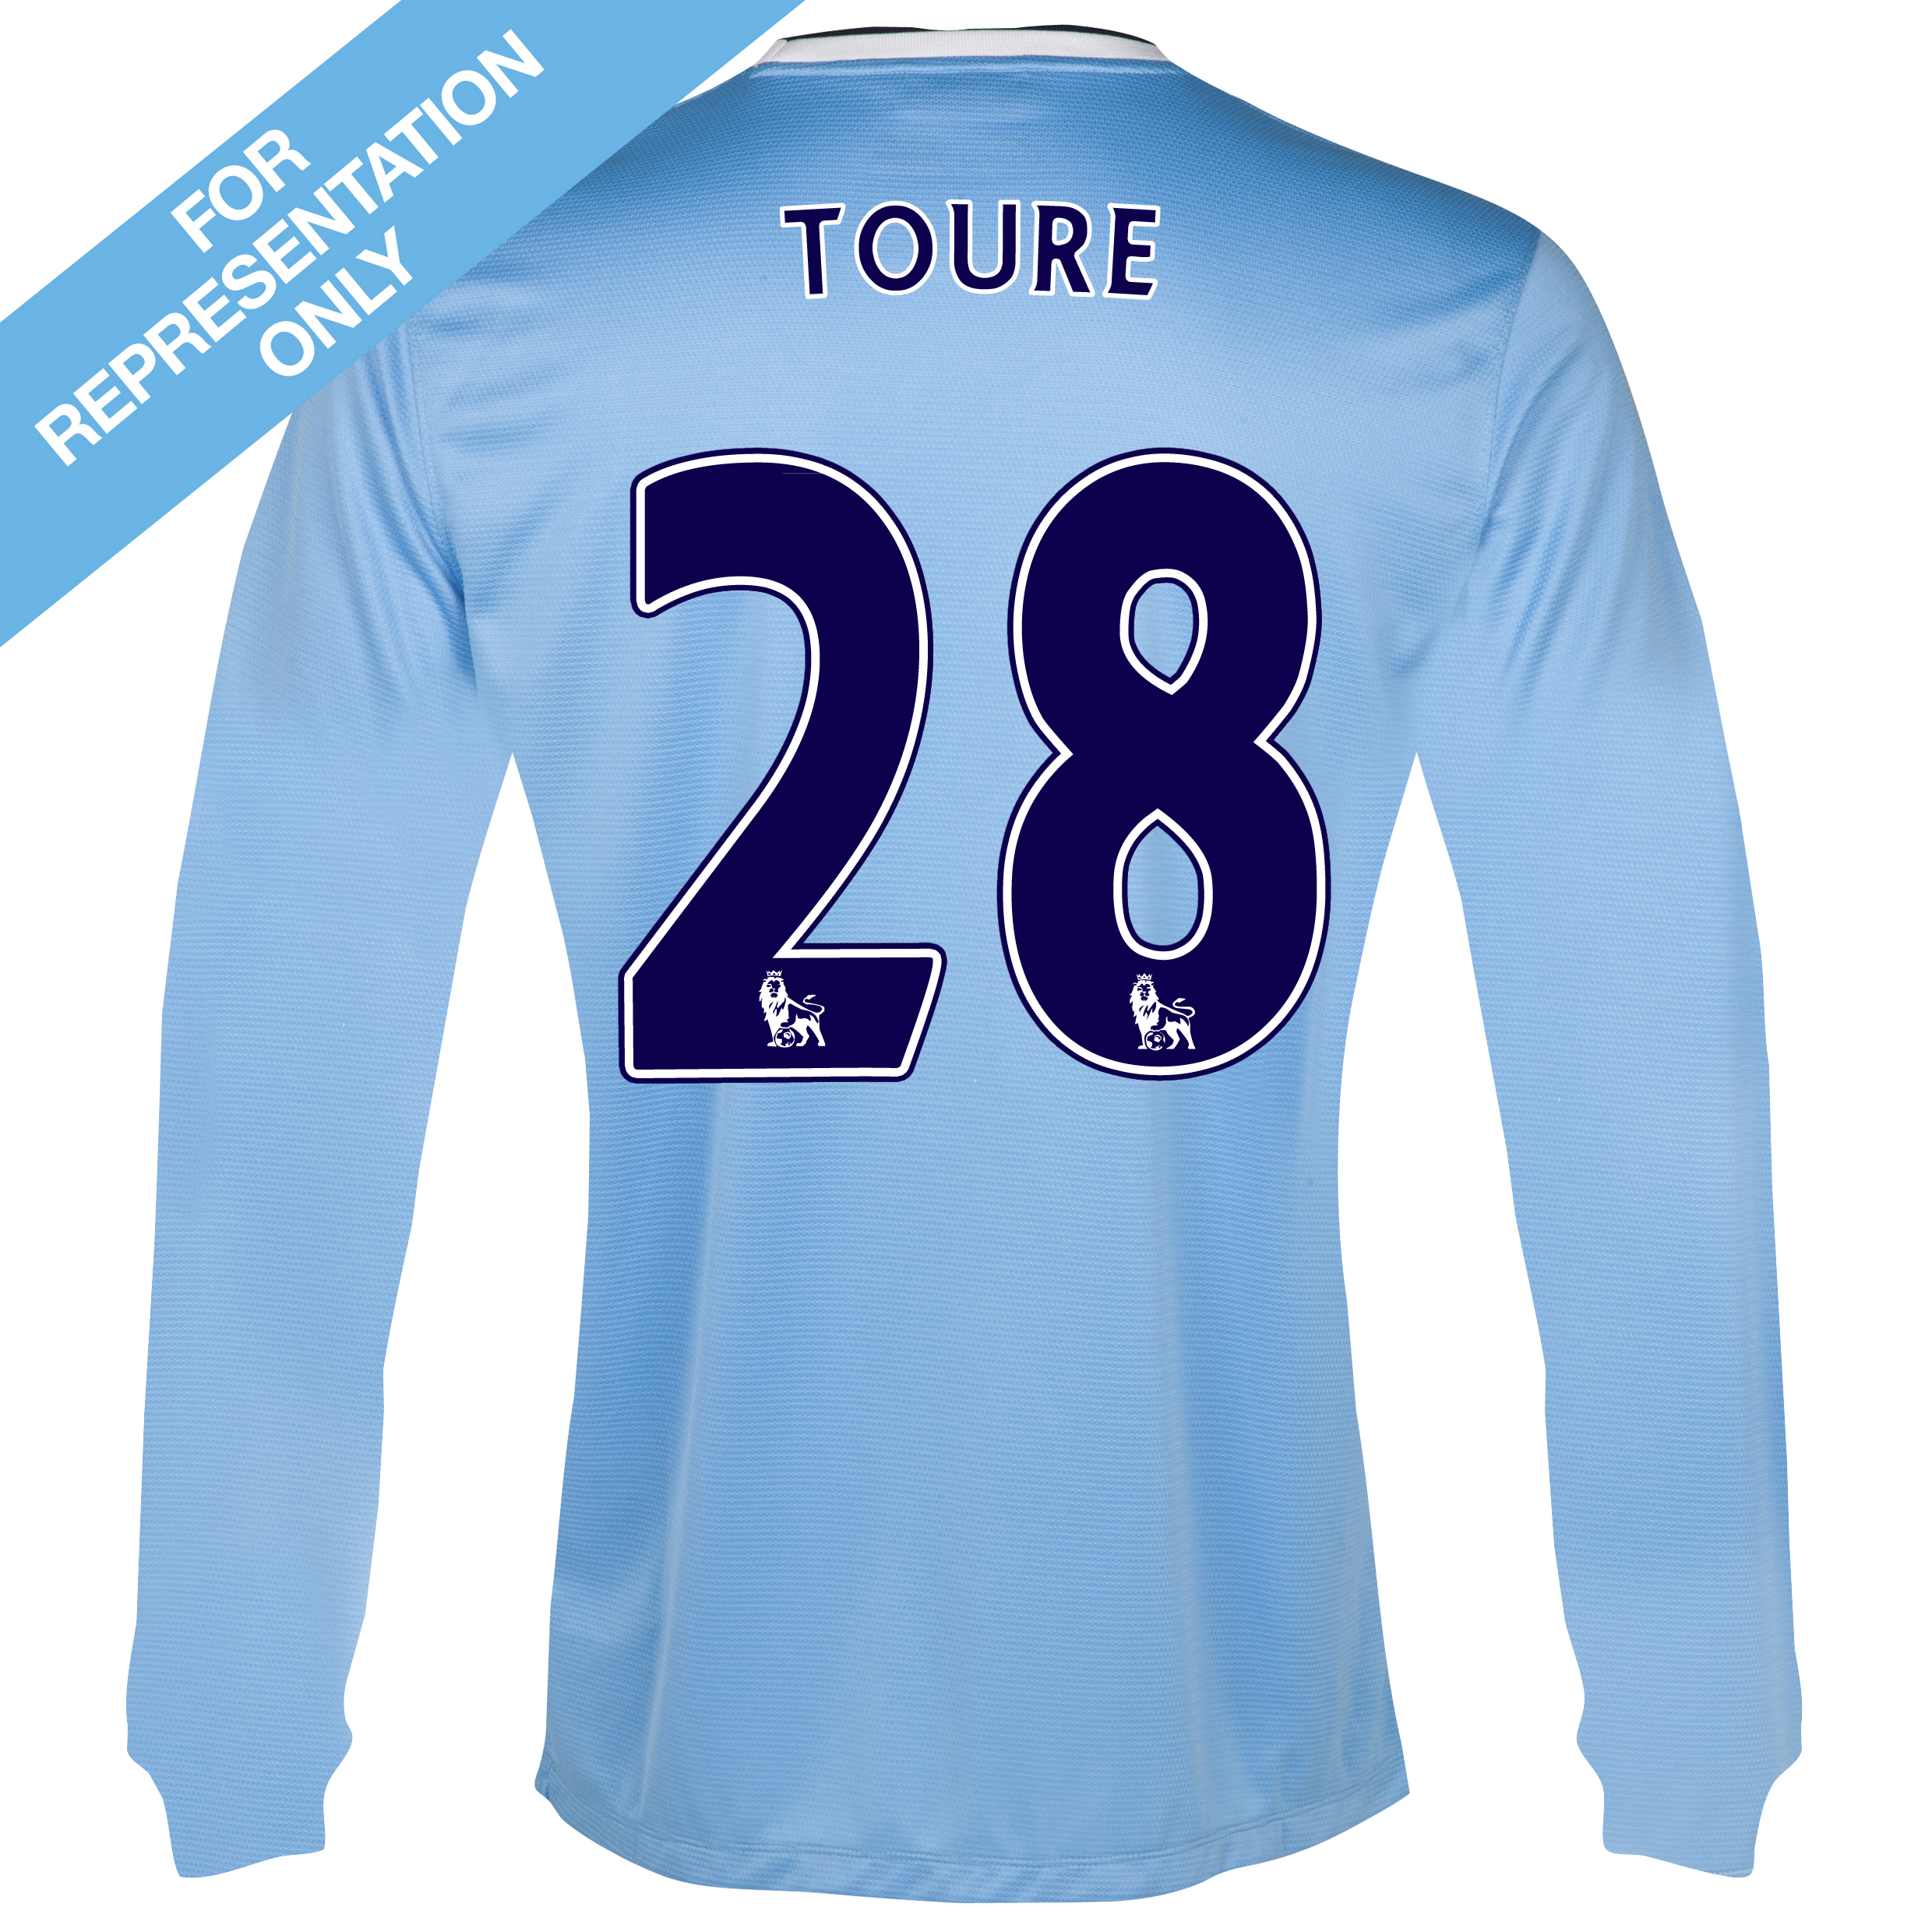 Manchester City Home Shirt 2013/14 - Long Sleeved - Junior with Toure 28 printing